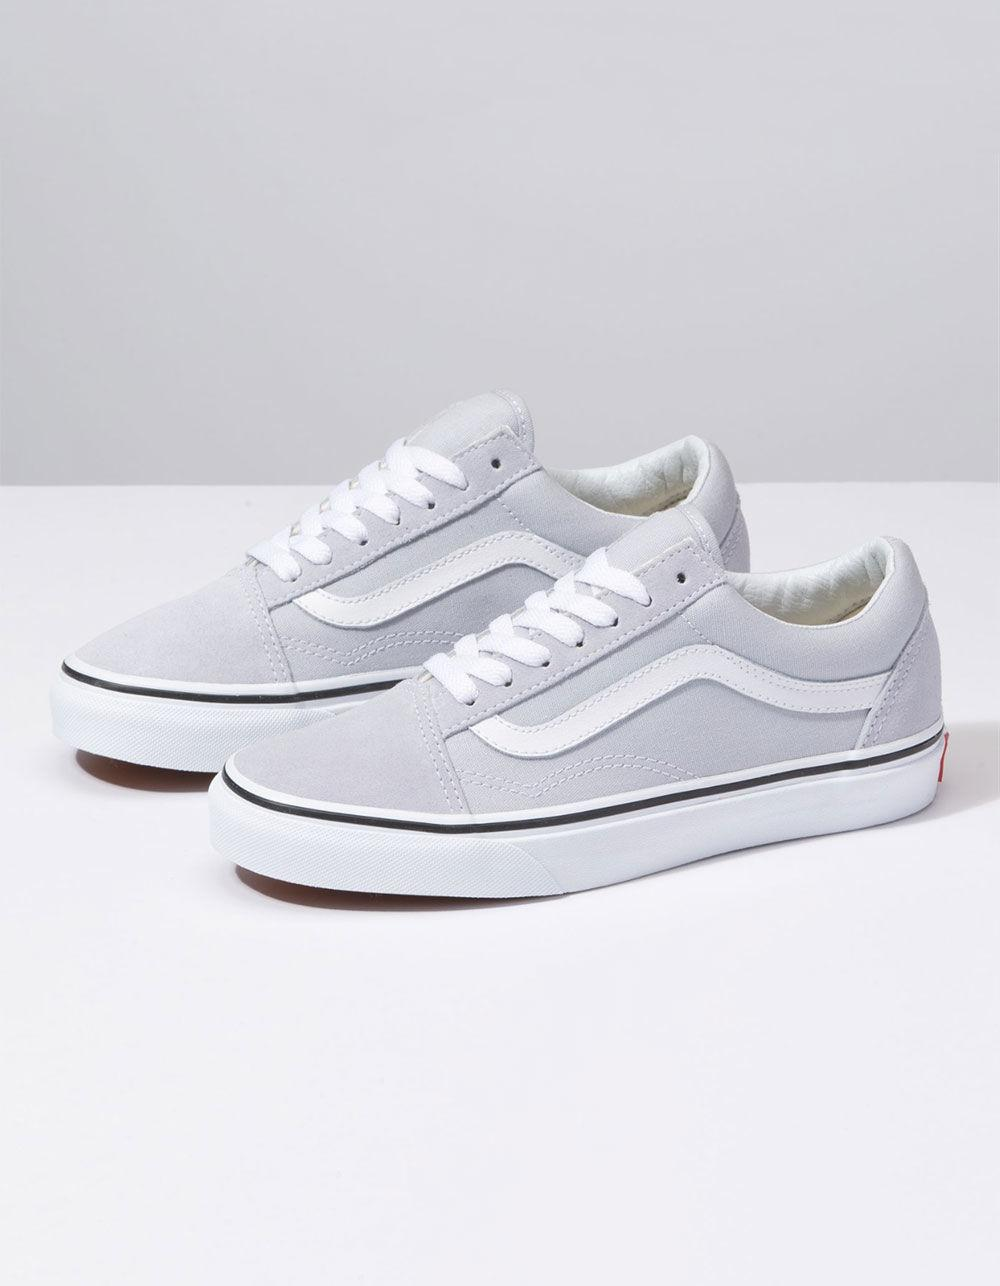 6e77723a5d Lyst - Vans Old Skool Gray Dawn   True White Womens Shoes in White